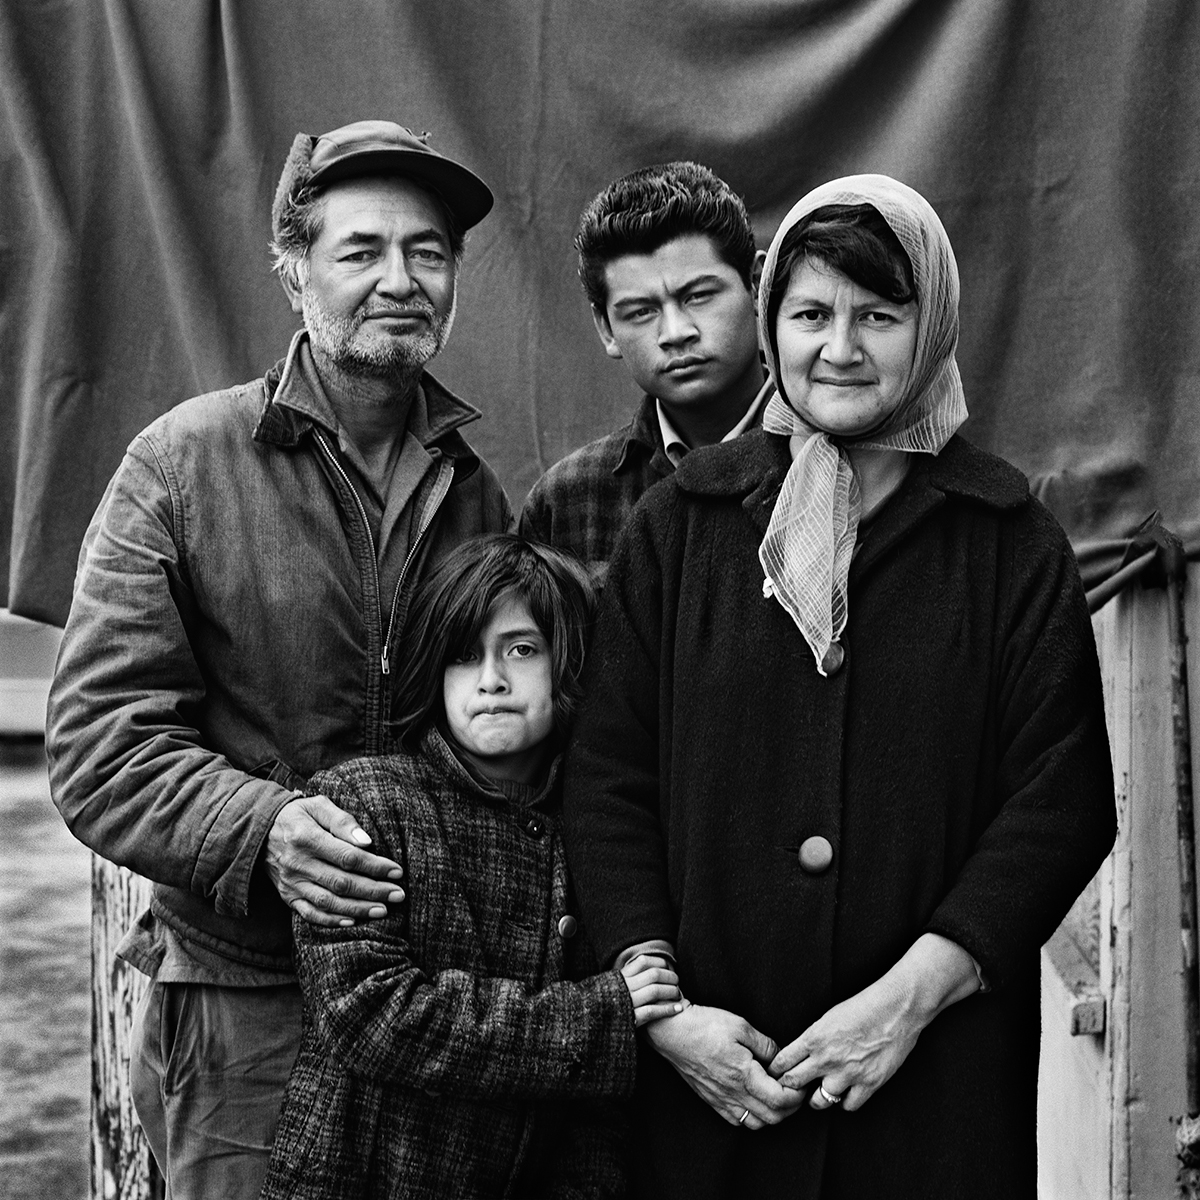 Farmworker Family, 1967